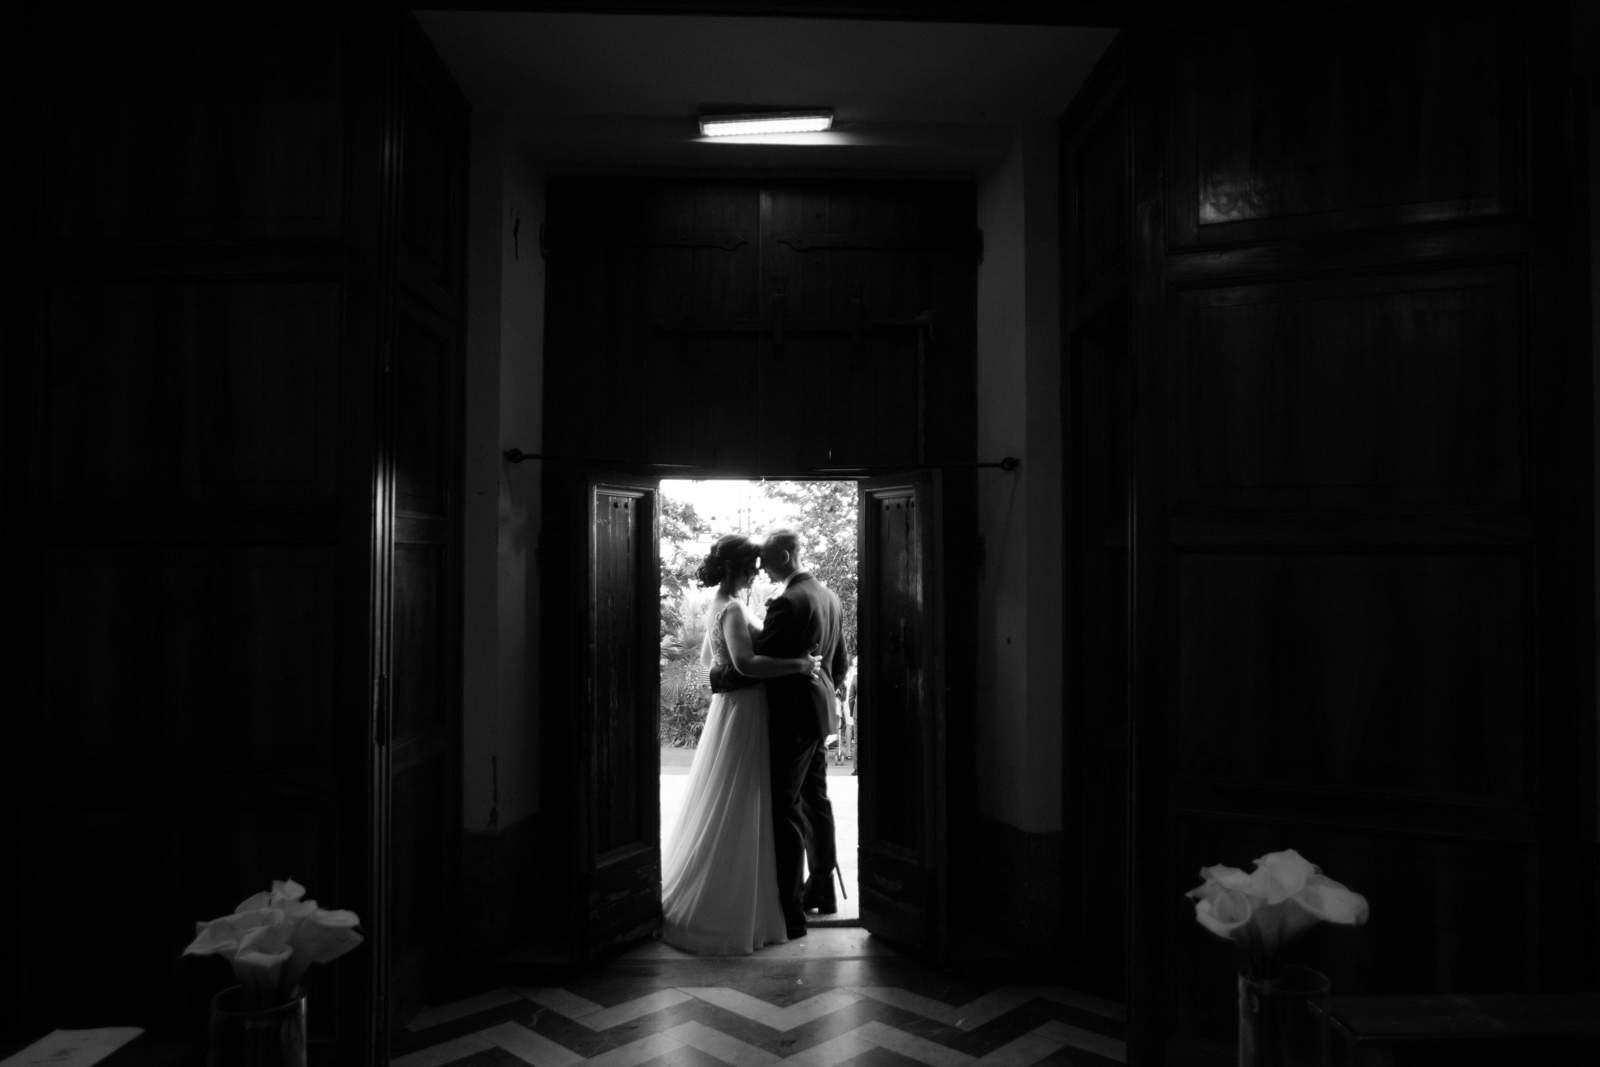 roma fotografo matrimonio 52 - Italian wedding photographer